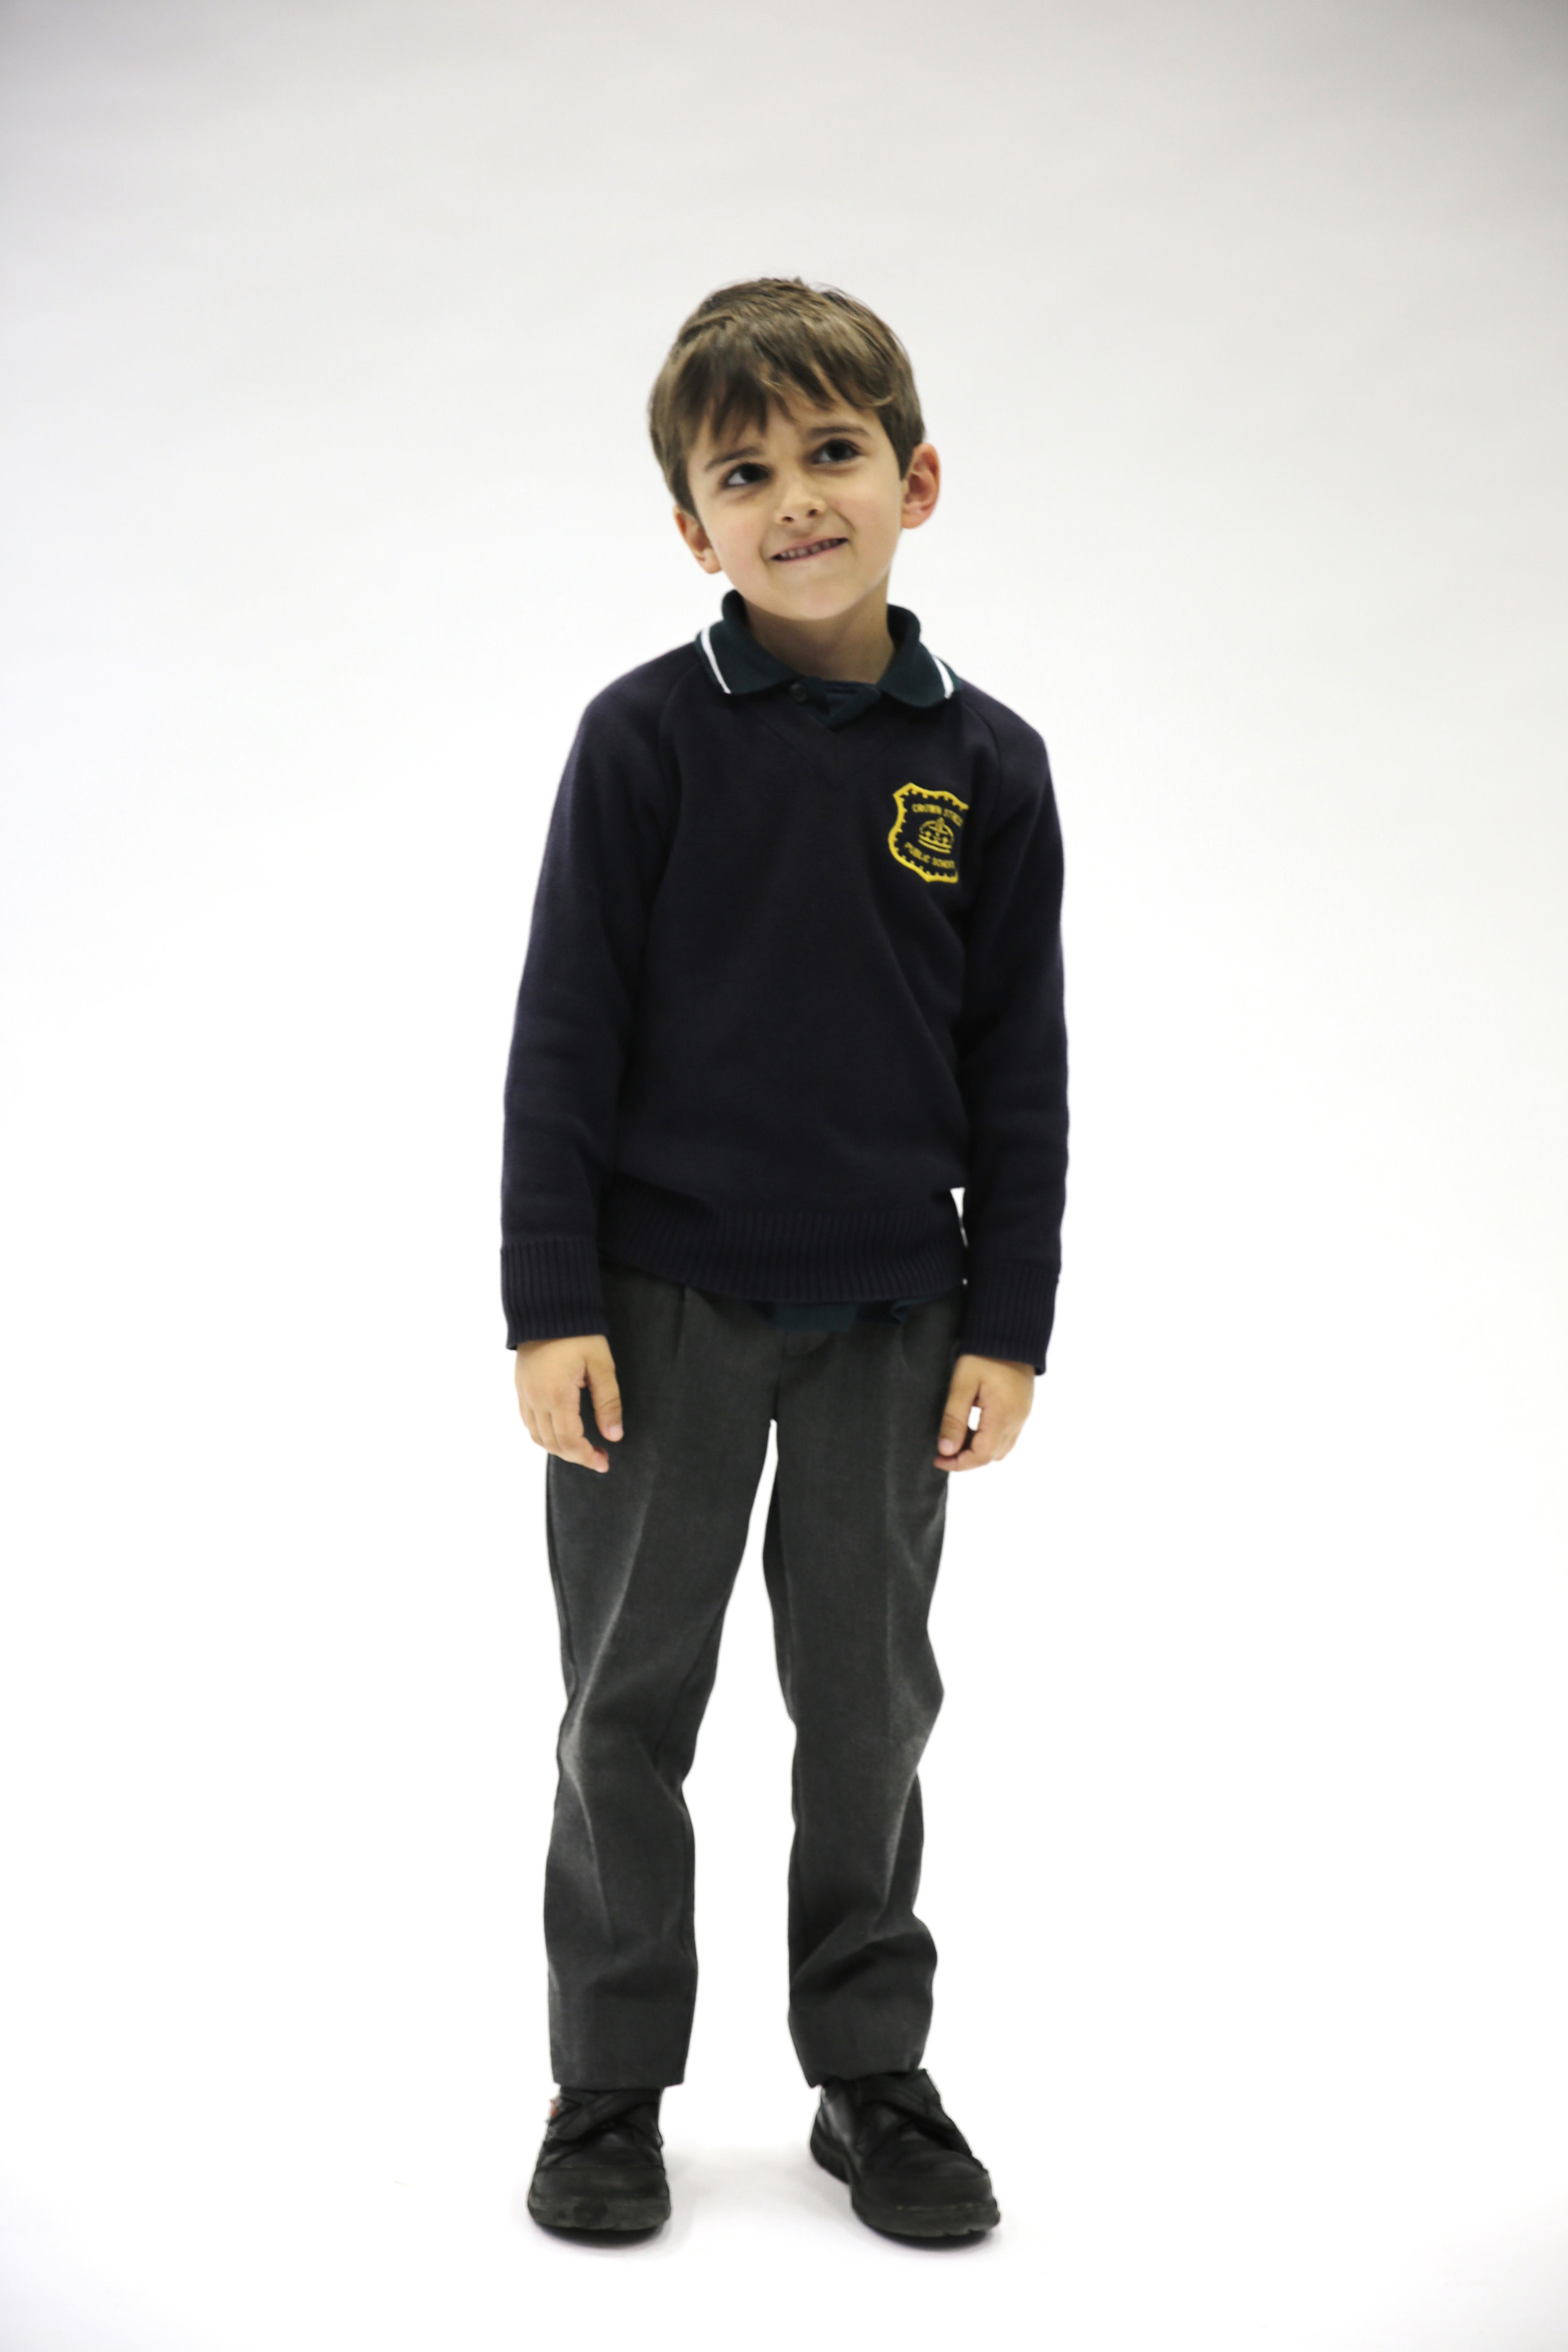 Long sleeve polo, jumper, grey trousers